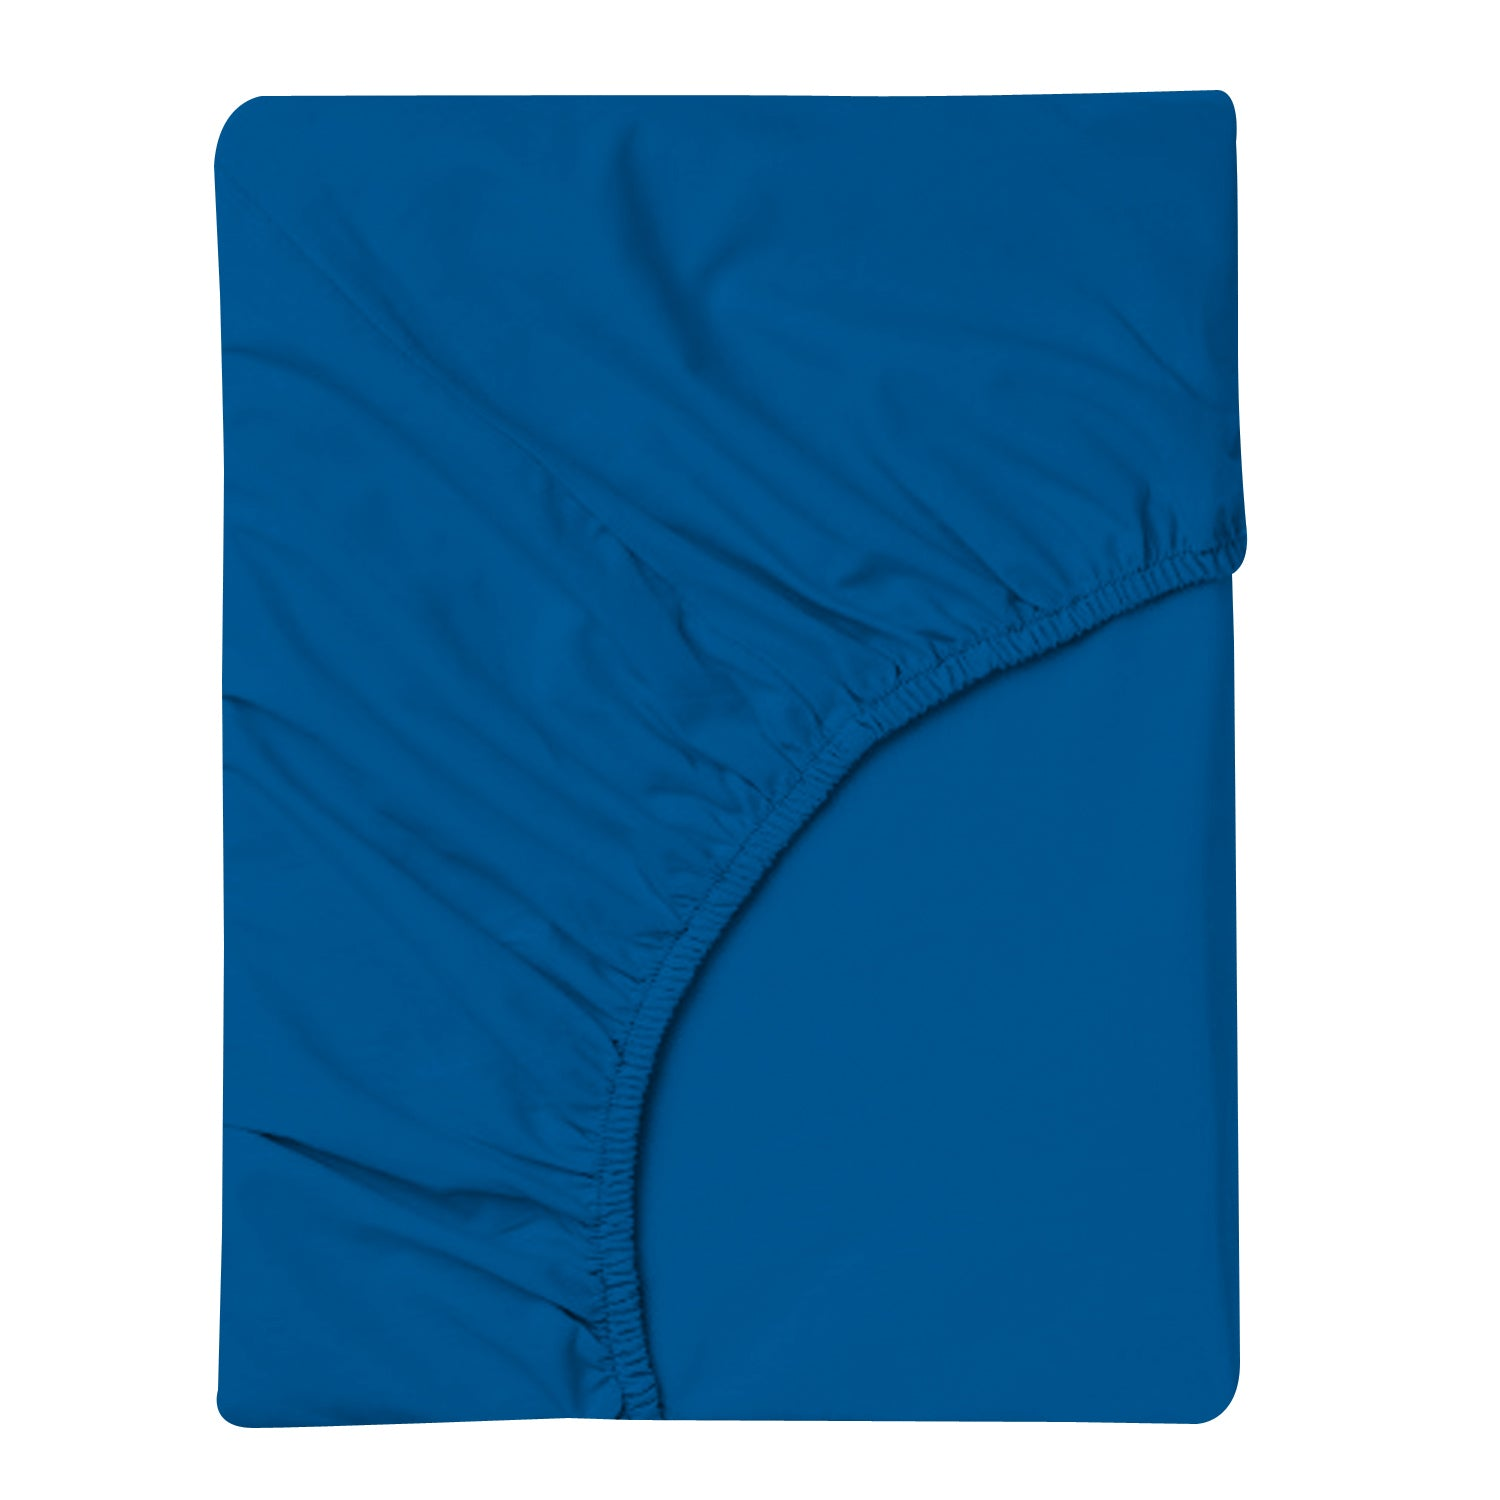 Dazzling Blue Ultrafine Cotton Sateen Sheet Set - 300TC